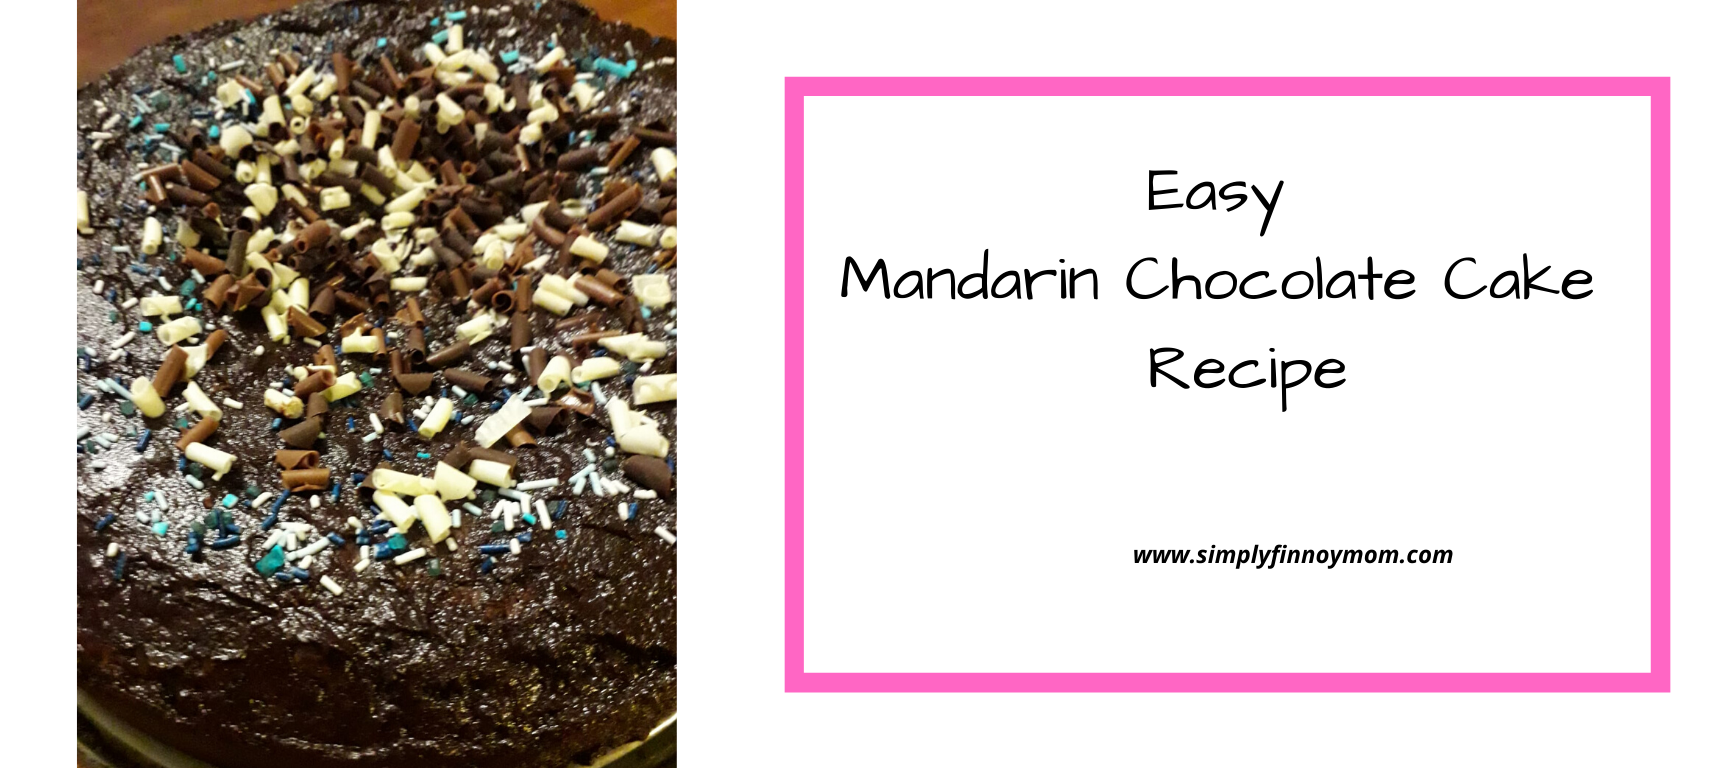 Easy Mandarin Chocolate Cake Recipe